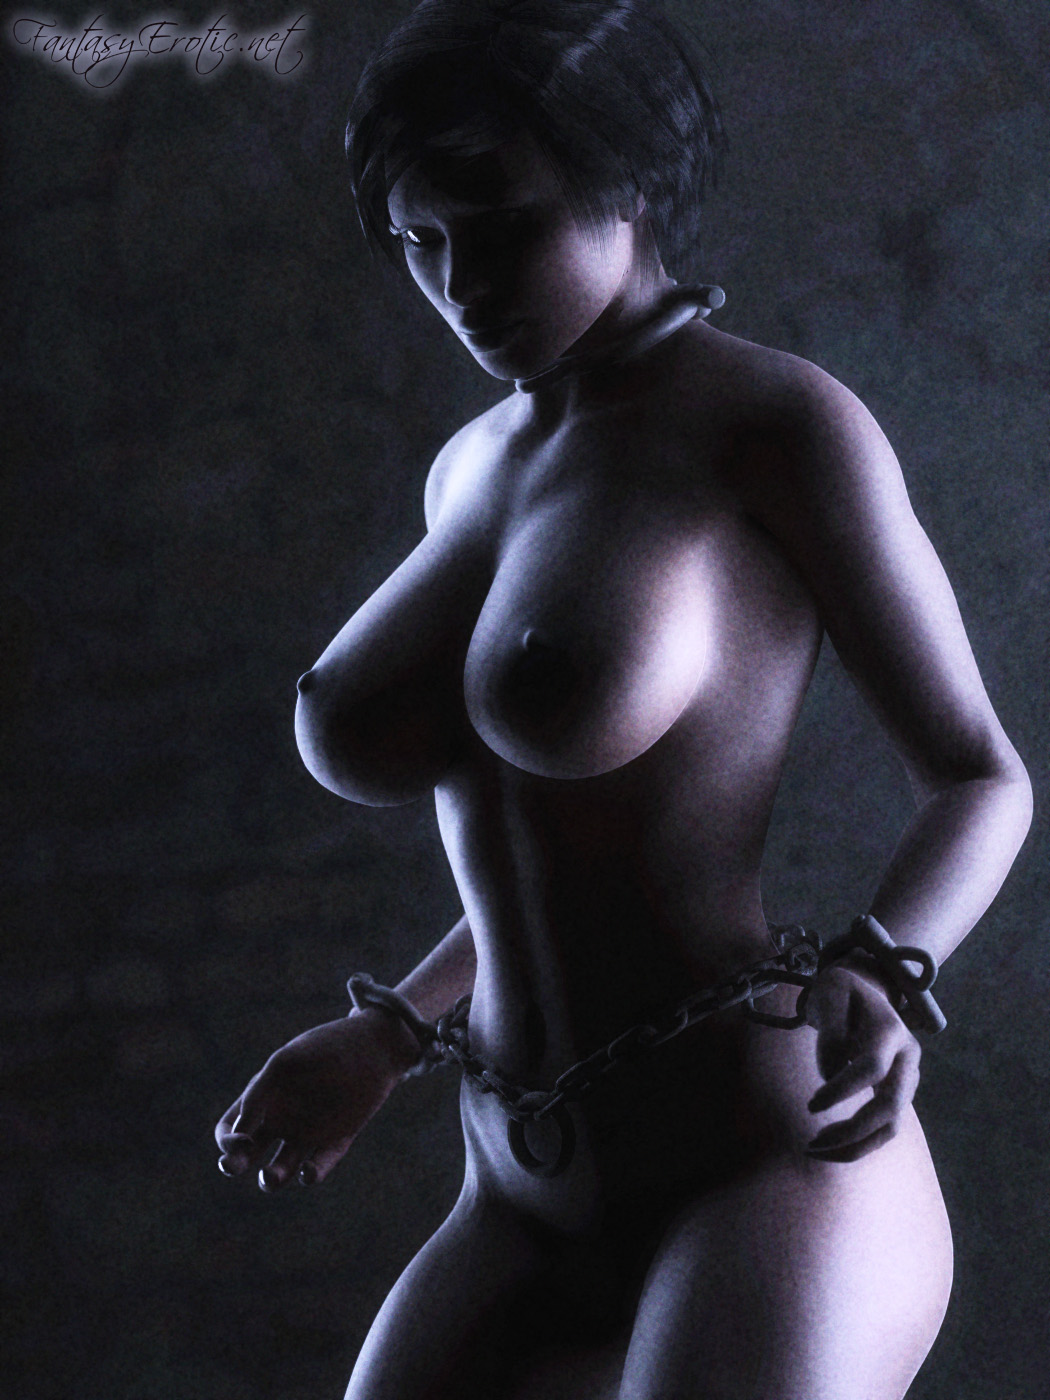 Nude girl bondage fantasy pornos virgin